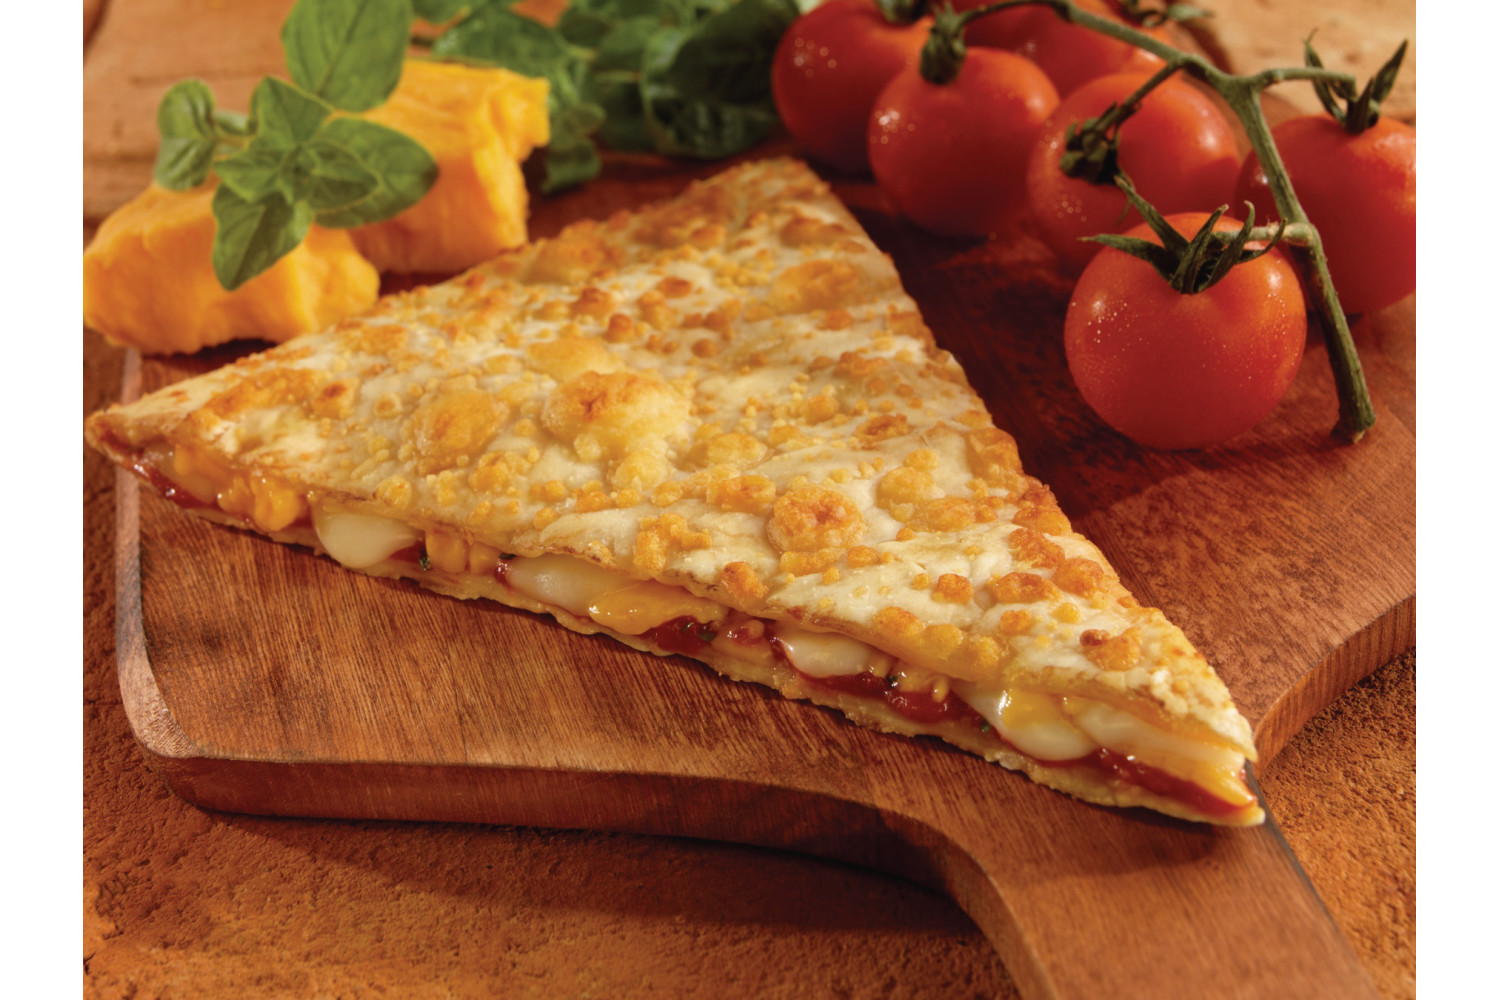 Pizza Quesadilla, Cheese, Whole Grain, 4.8 oz, CN